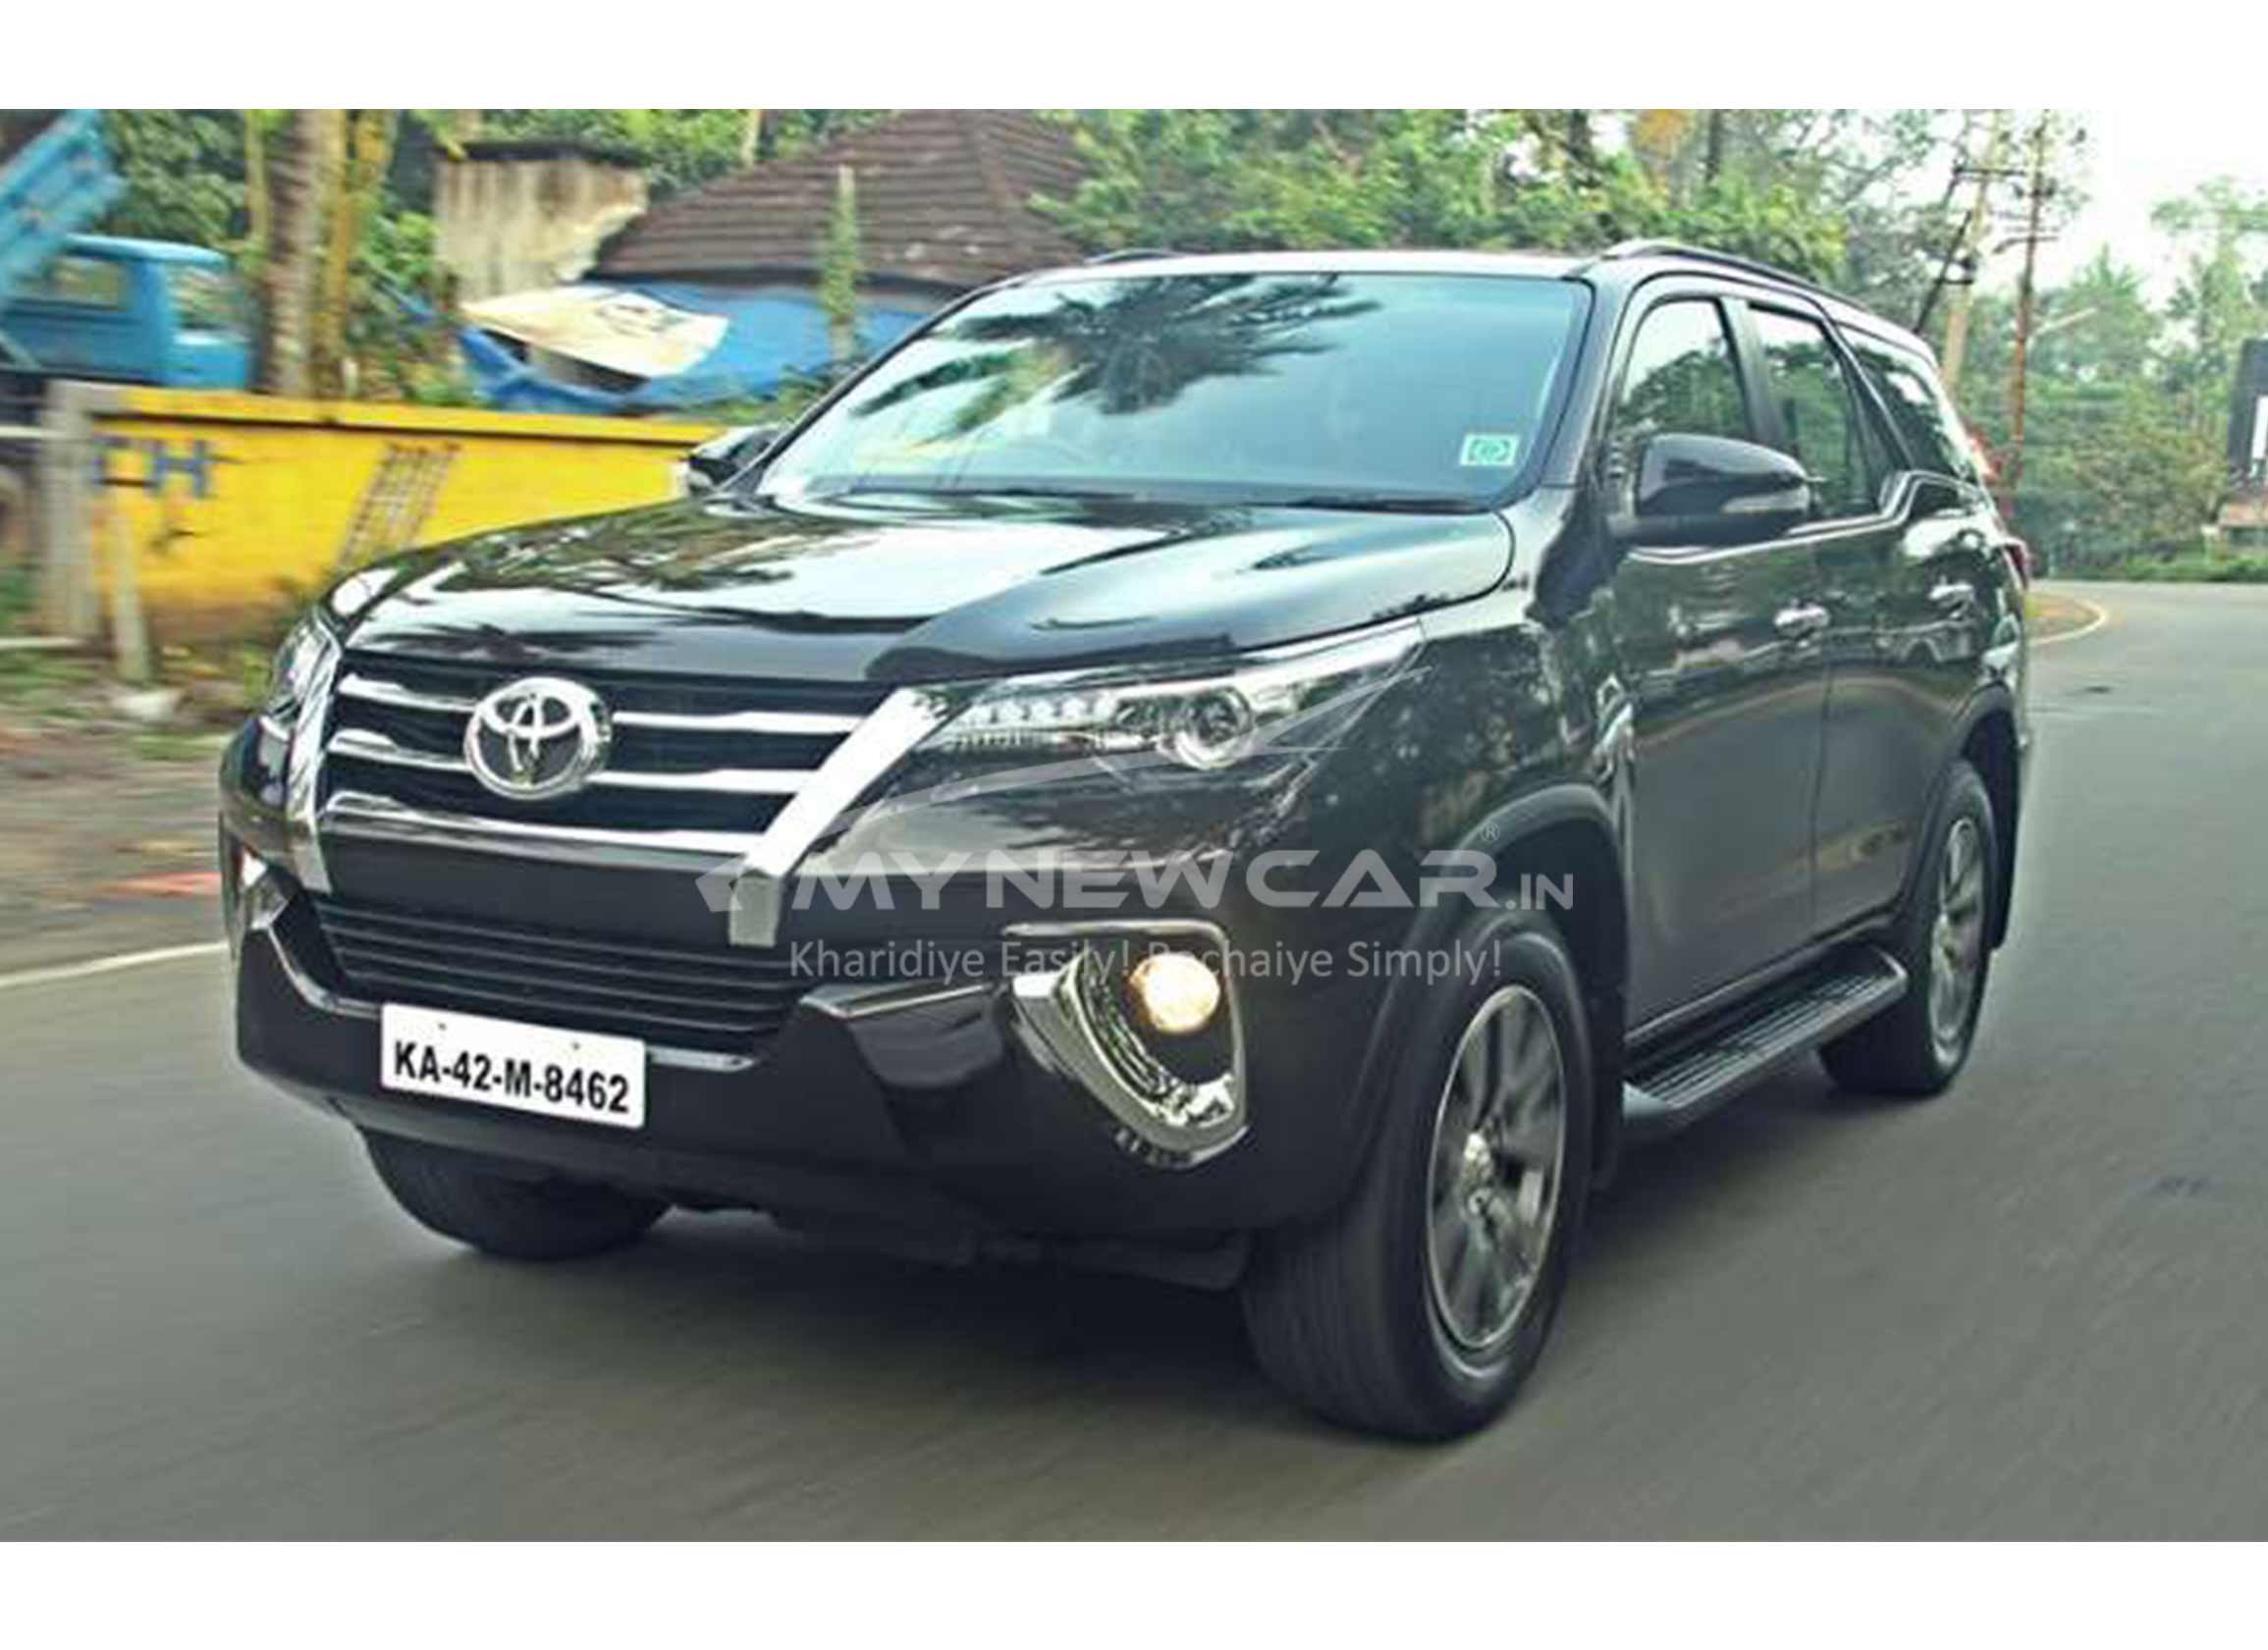 toyota fortuner most popular suv in india apr 2020